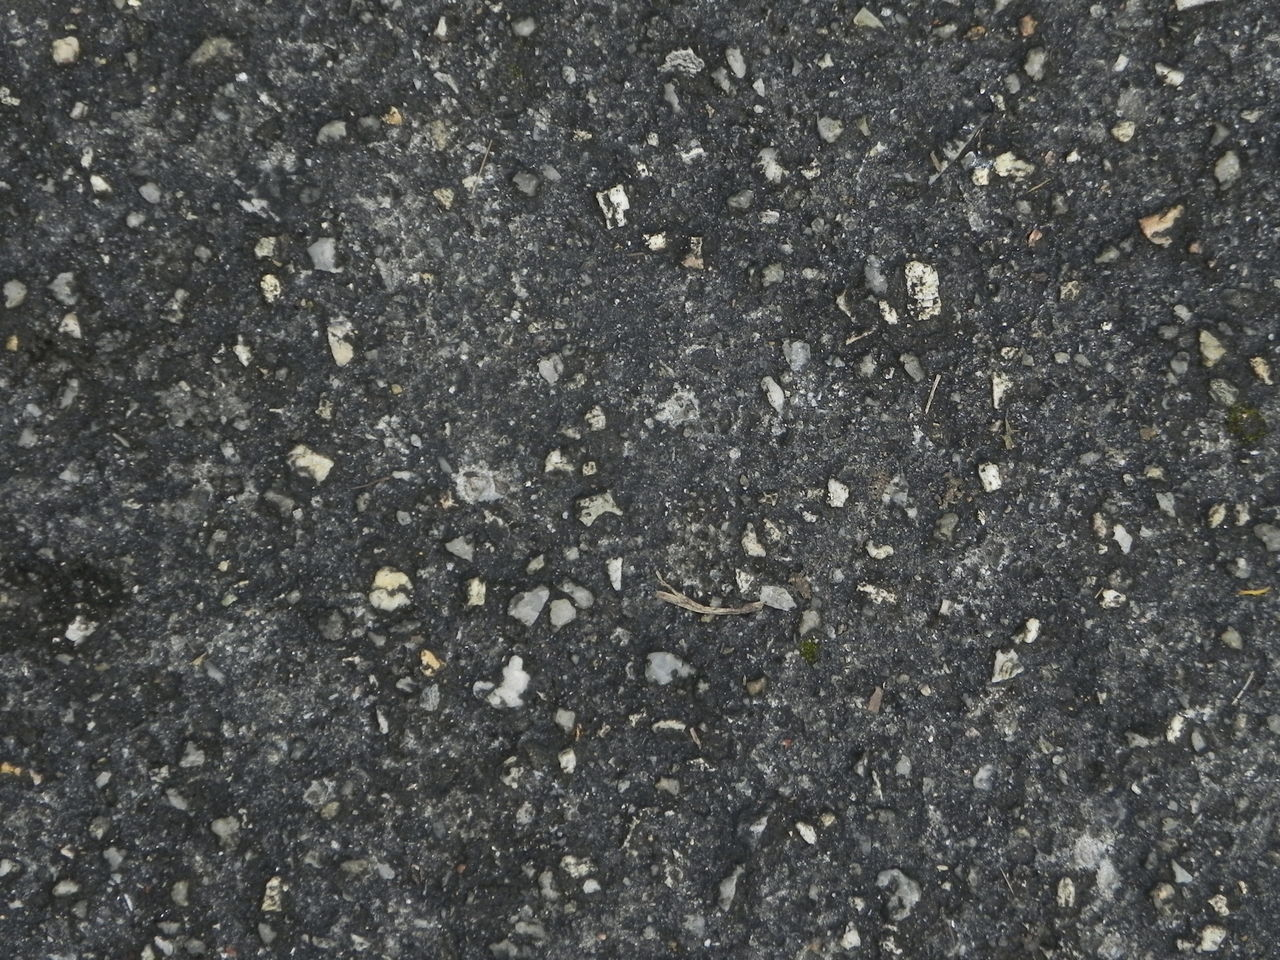 backgrounds, no people, textured, pattern, nature, road, abstract, outdoors, pebble, full frame, close-up, day